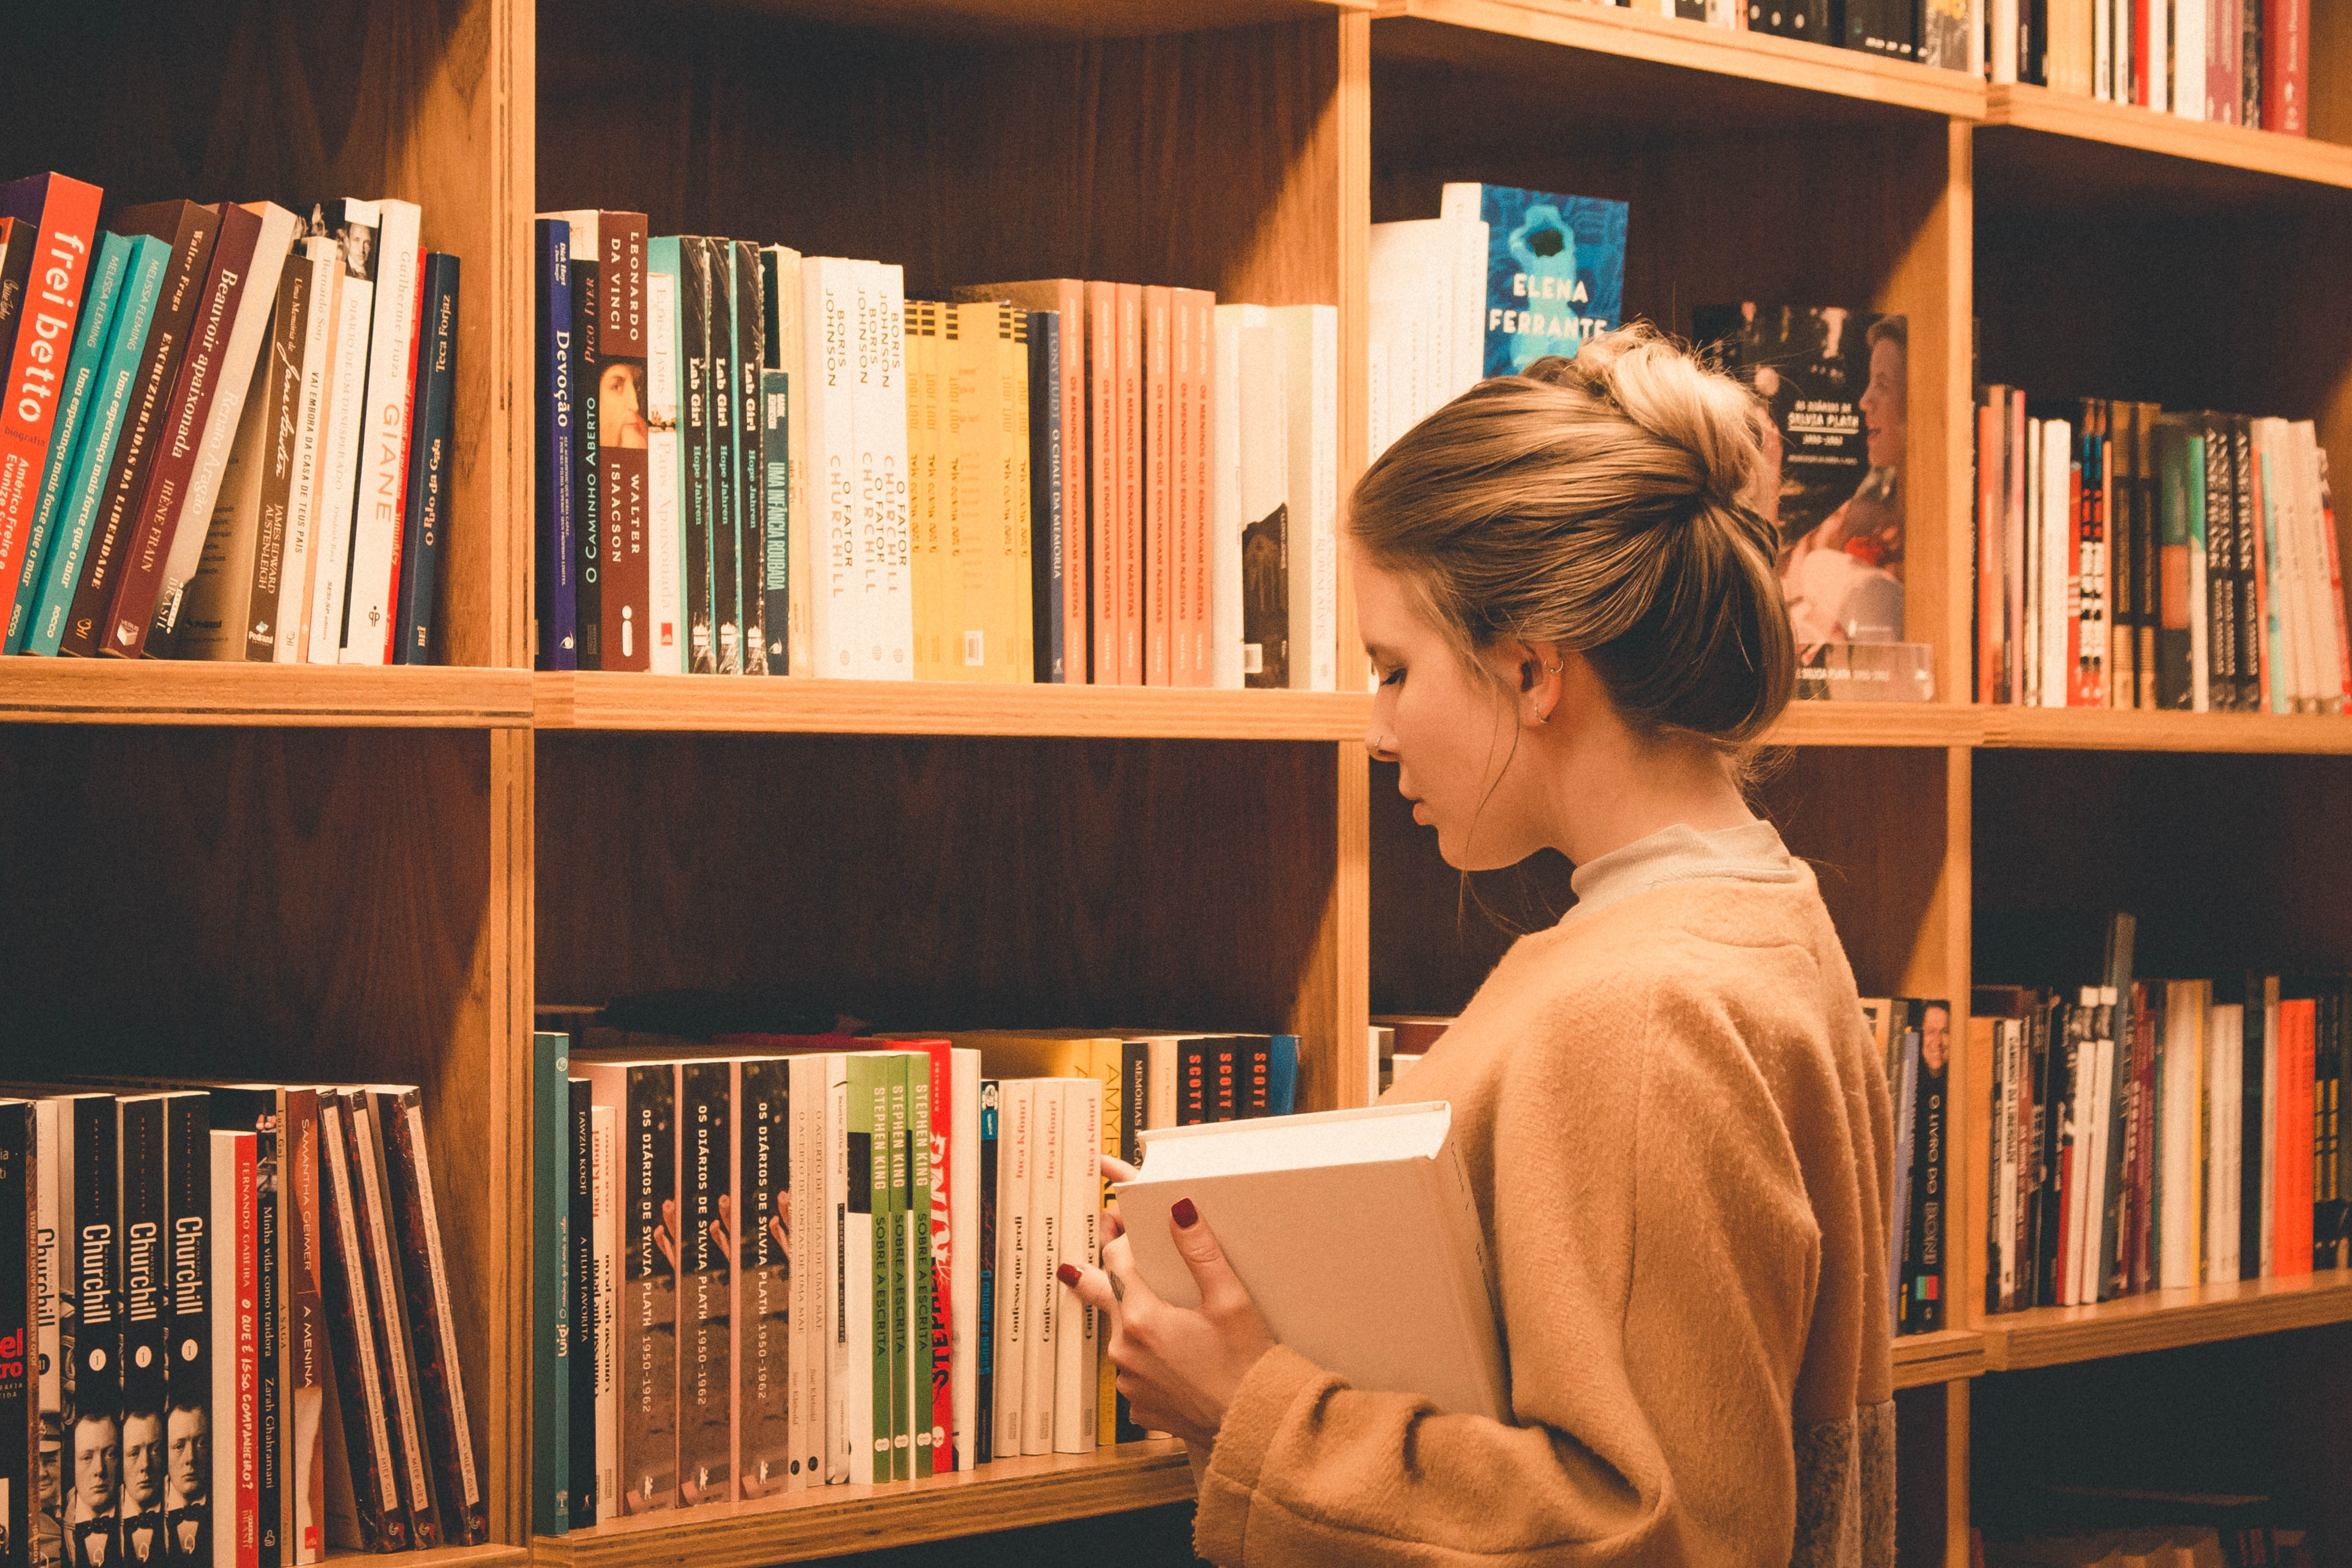 Student at library shelves